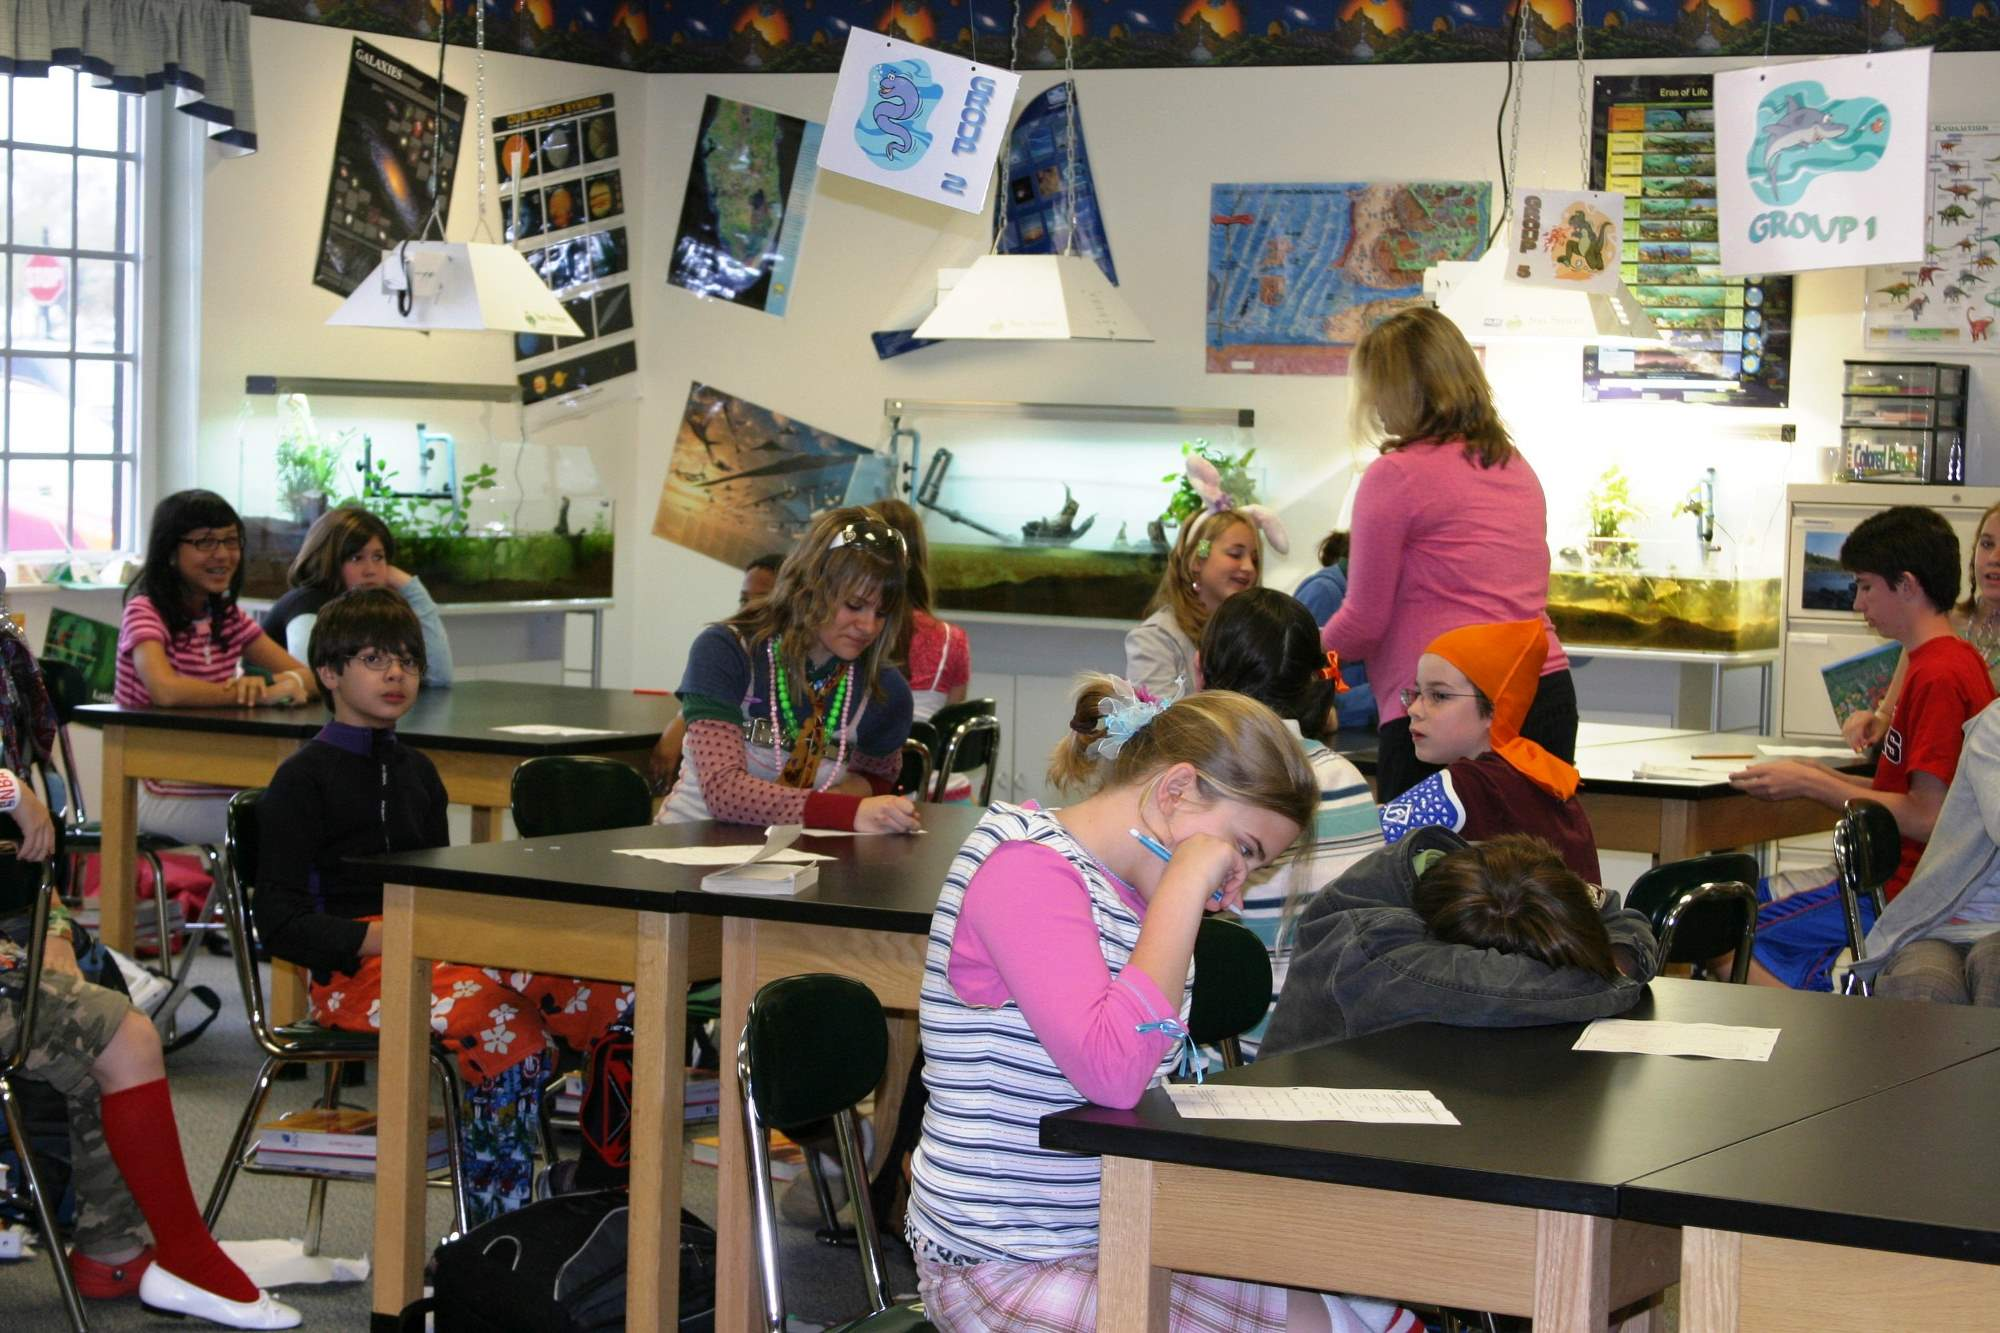 Middle School image 17 of 37